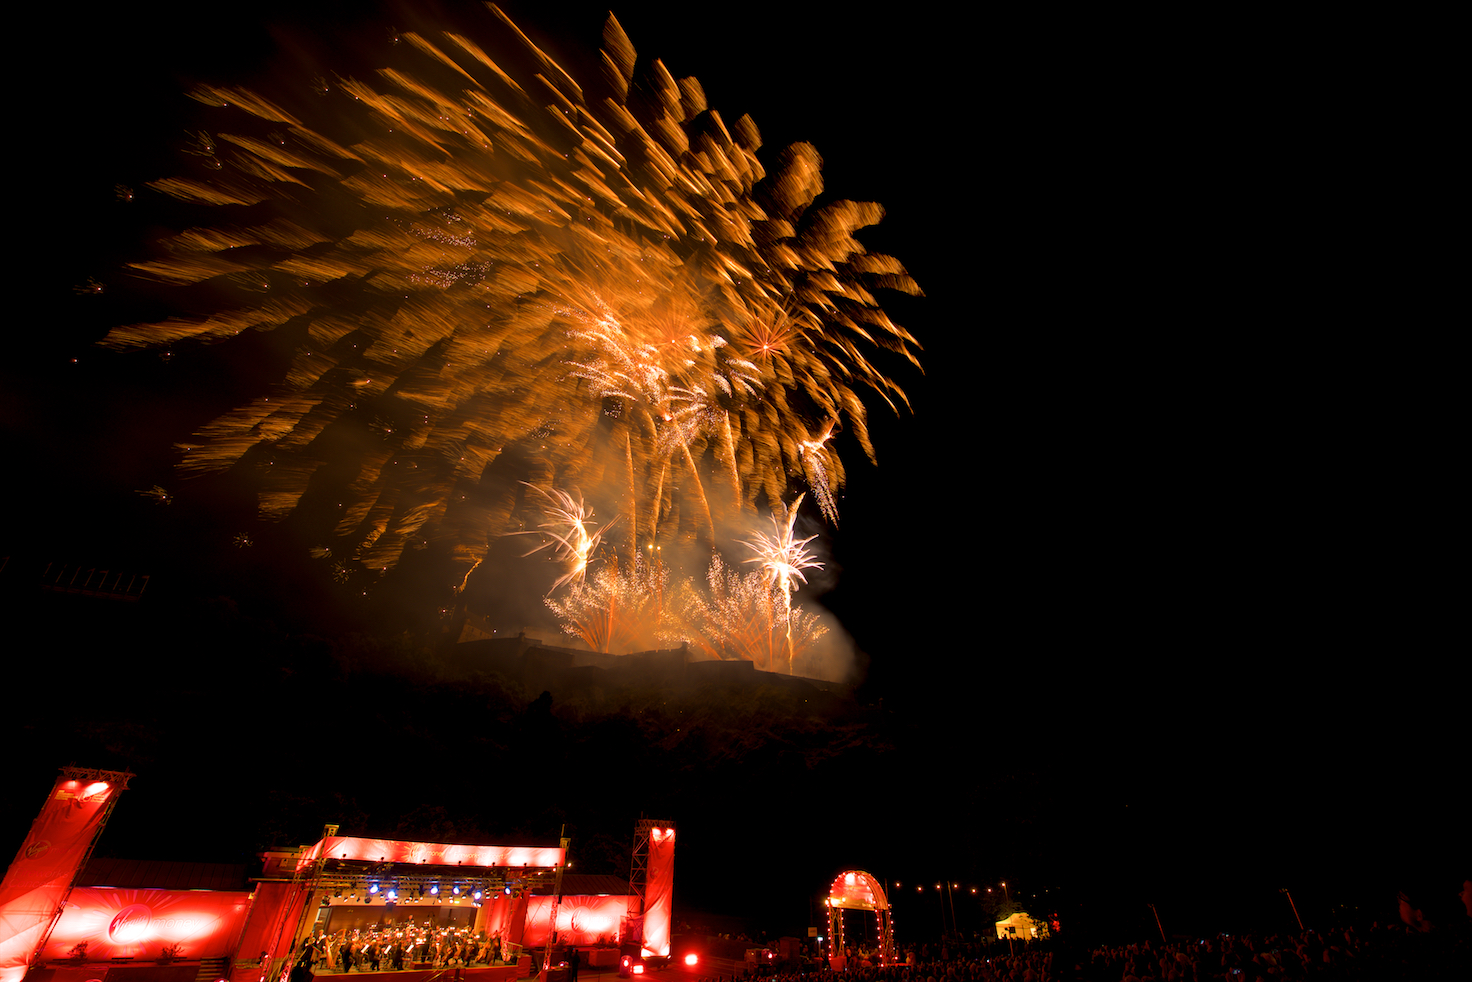 virgin-money-fireworks-concert-edinburgh-castleedinburgh-international-festival-edinburgh-castle-29th-august-2016-12